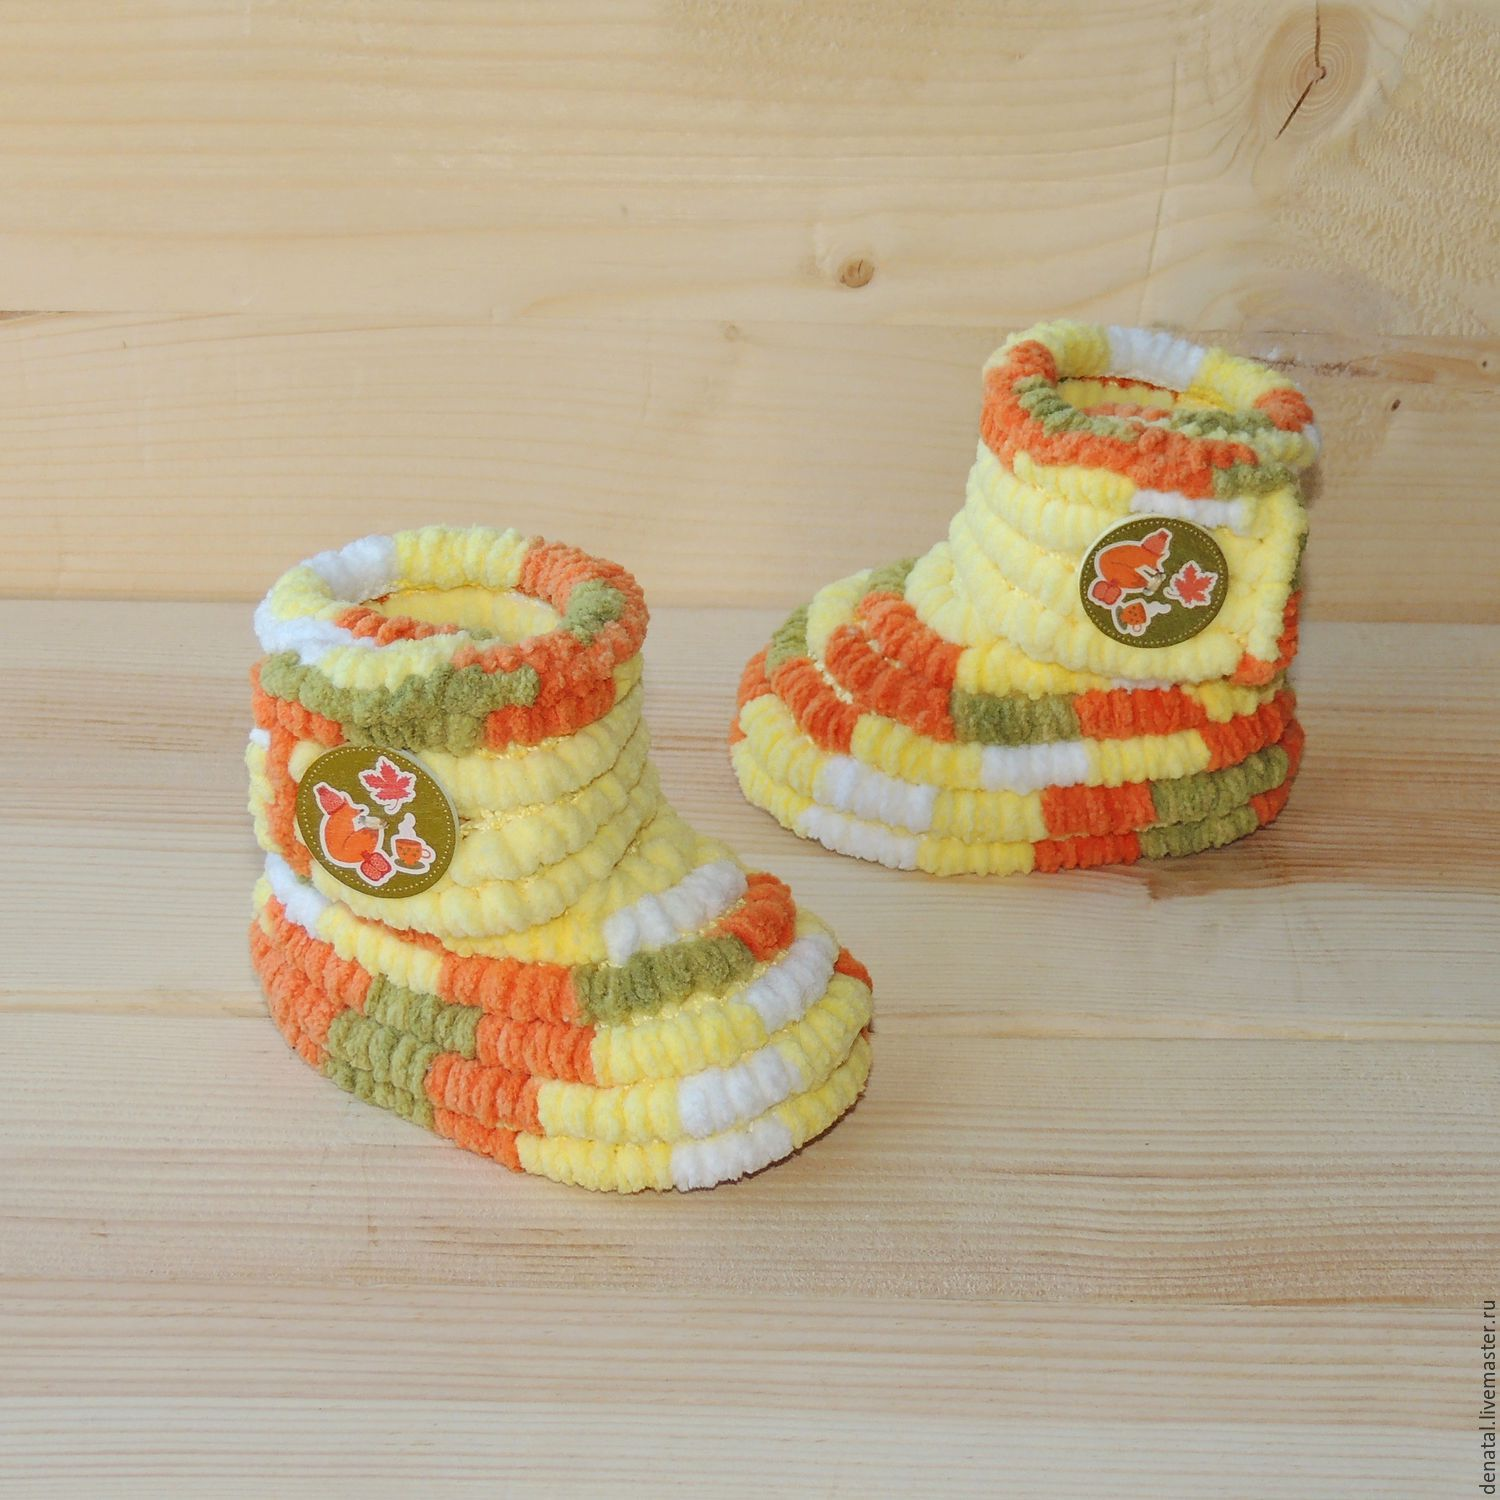 Shop Dental is knitted shoes handmade - plush booties boots unisex. lemon in combination with white, orange, green, yellow, melange. Booties knitted micropore.